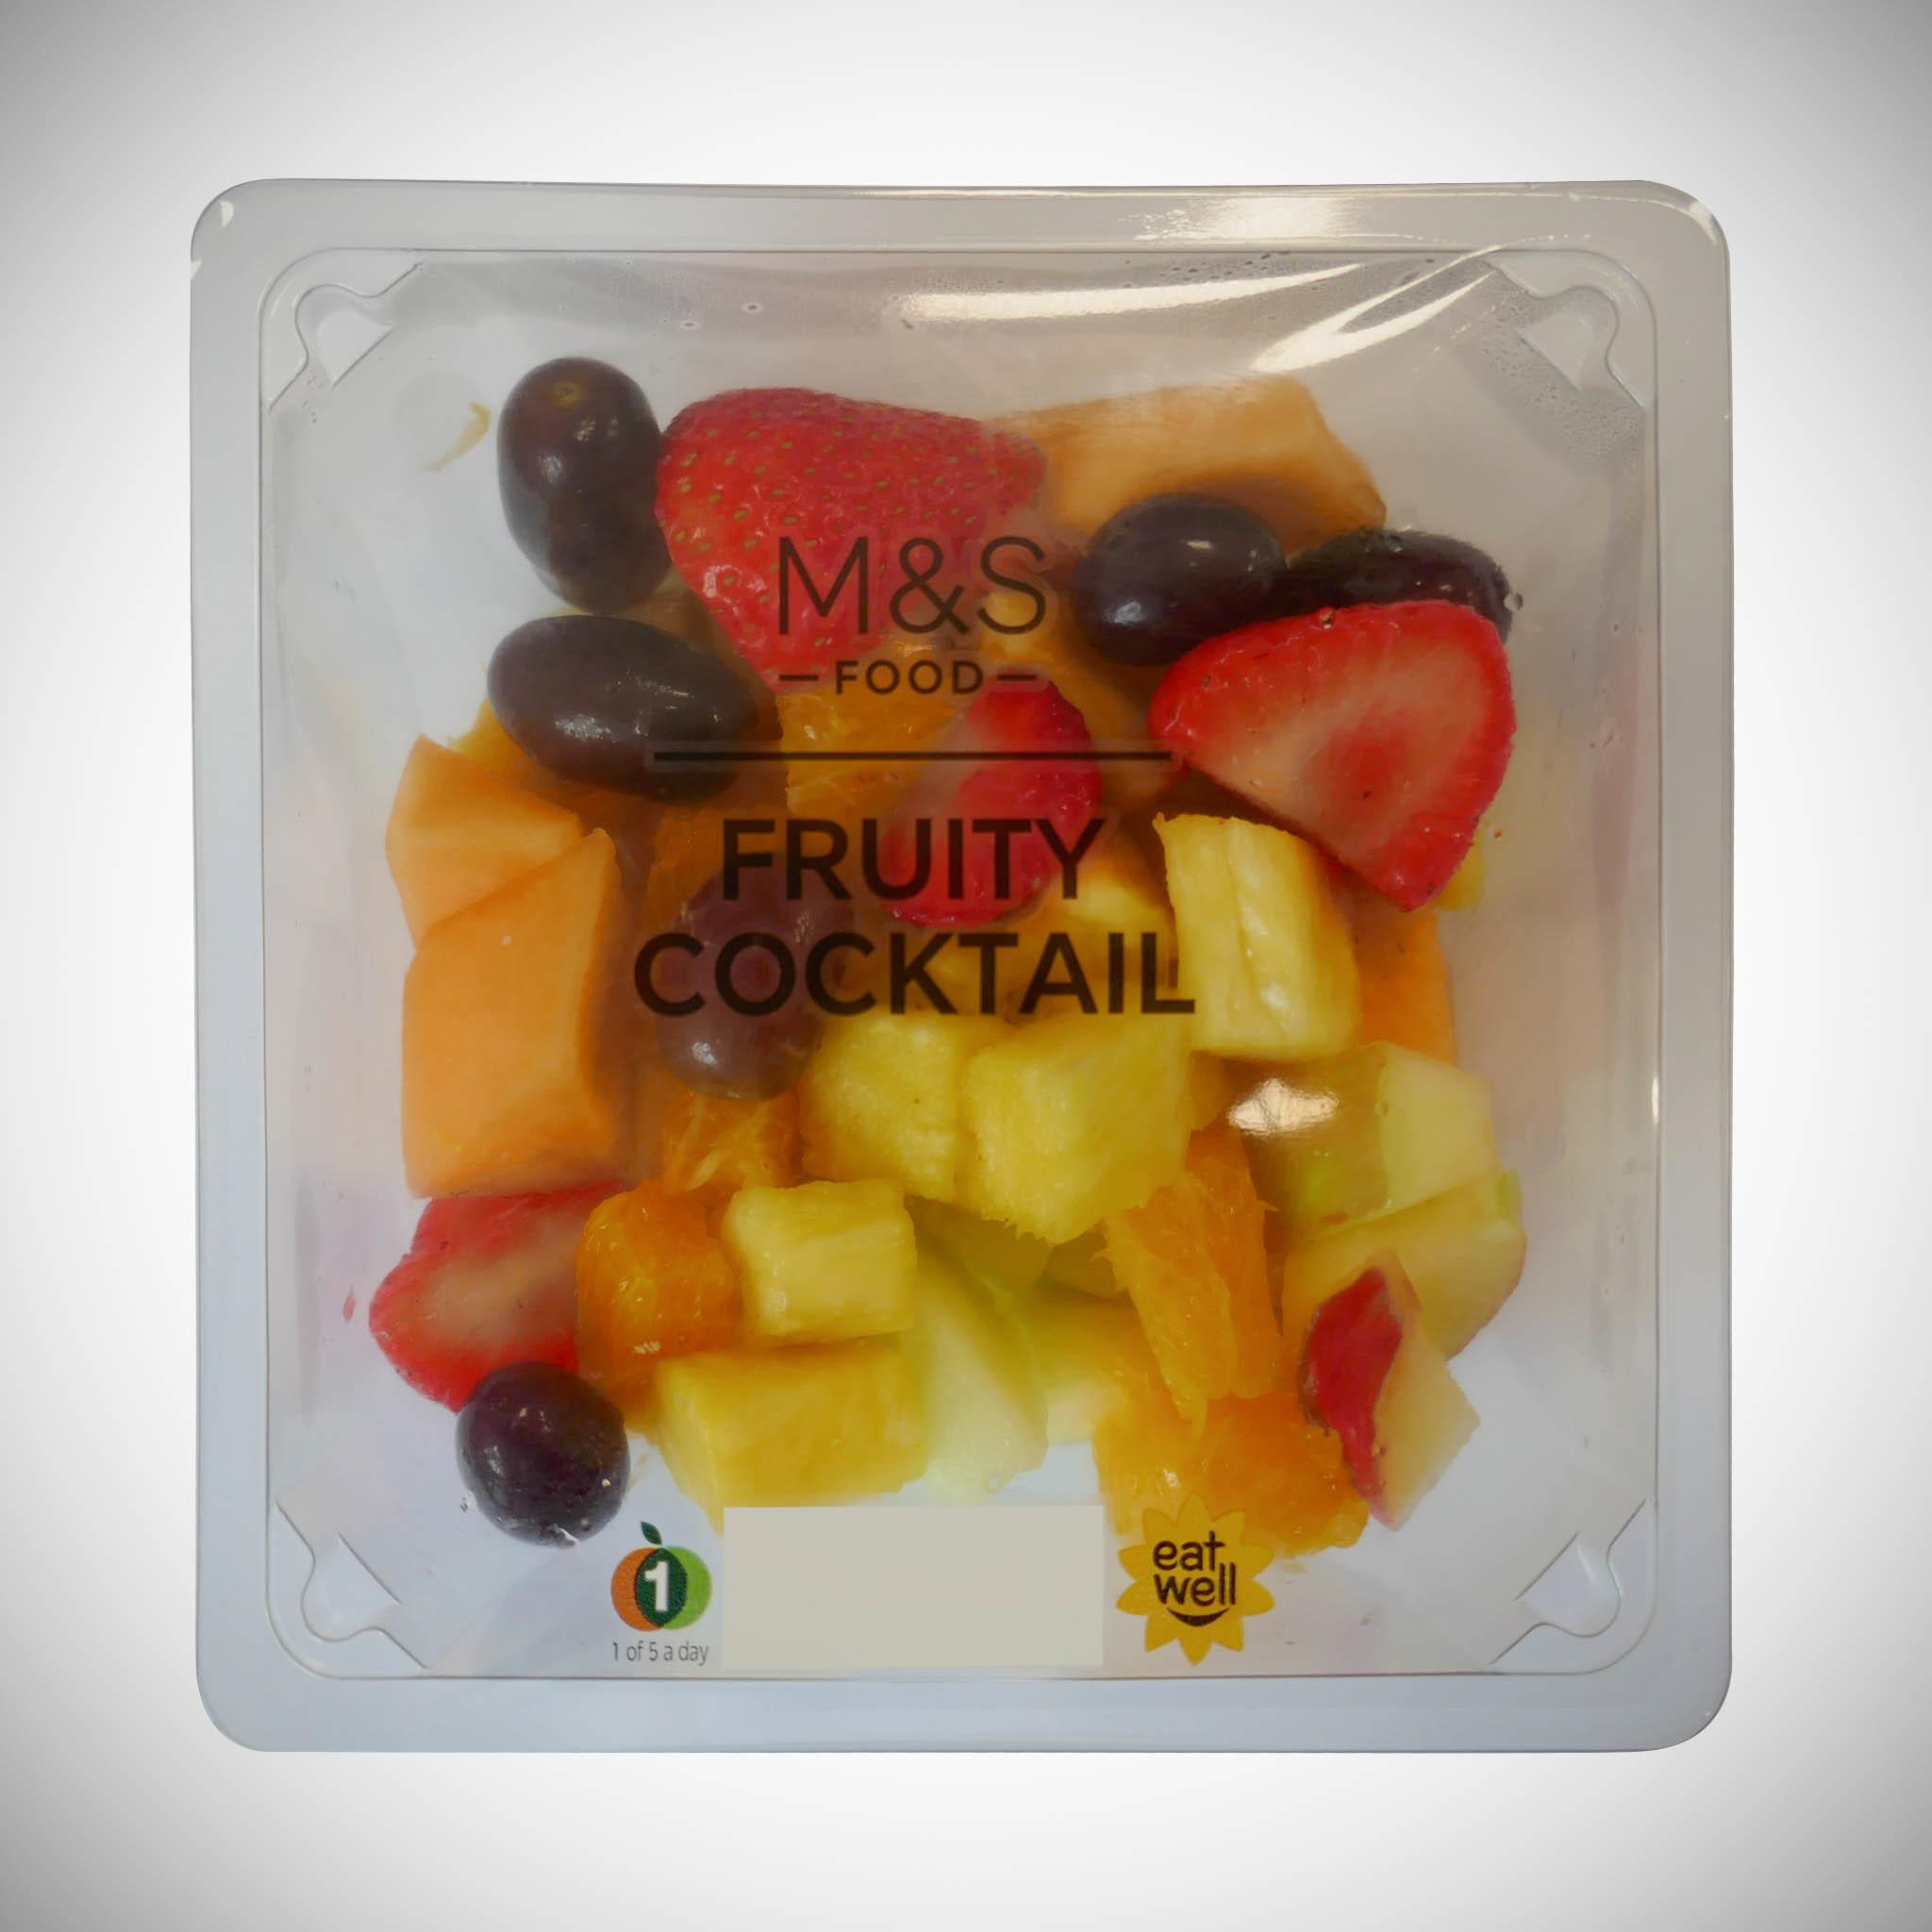 Fruity Cocktail 350g